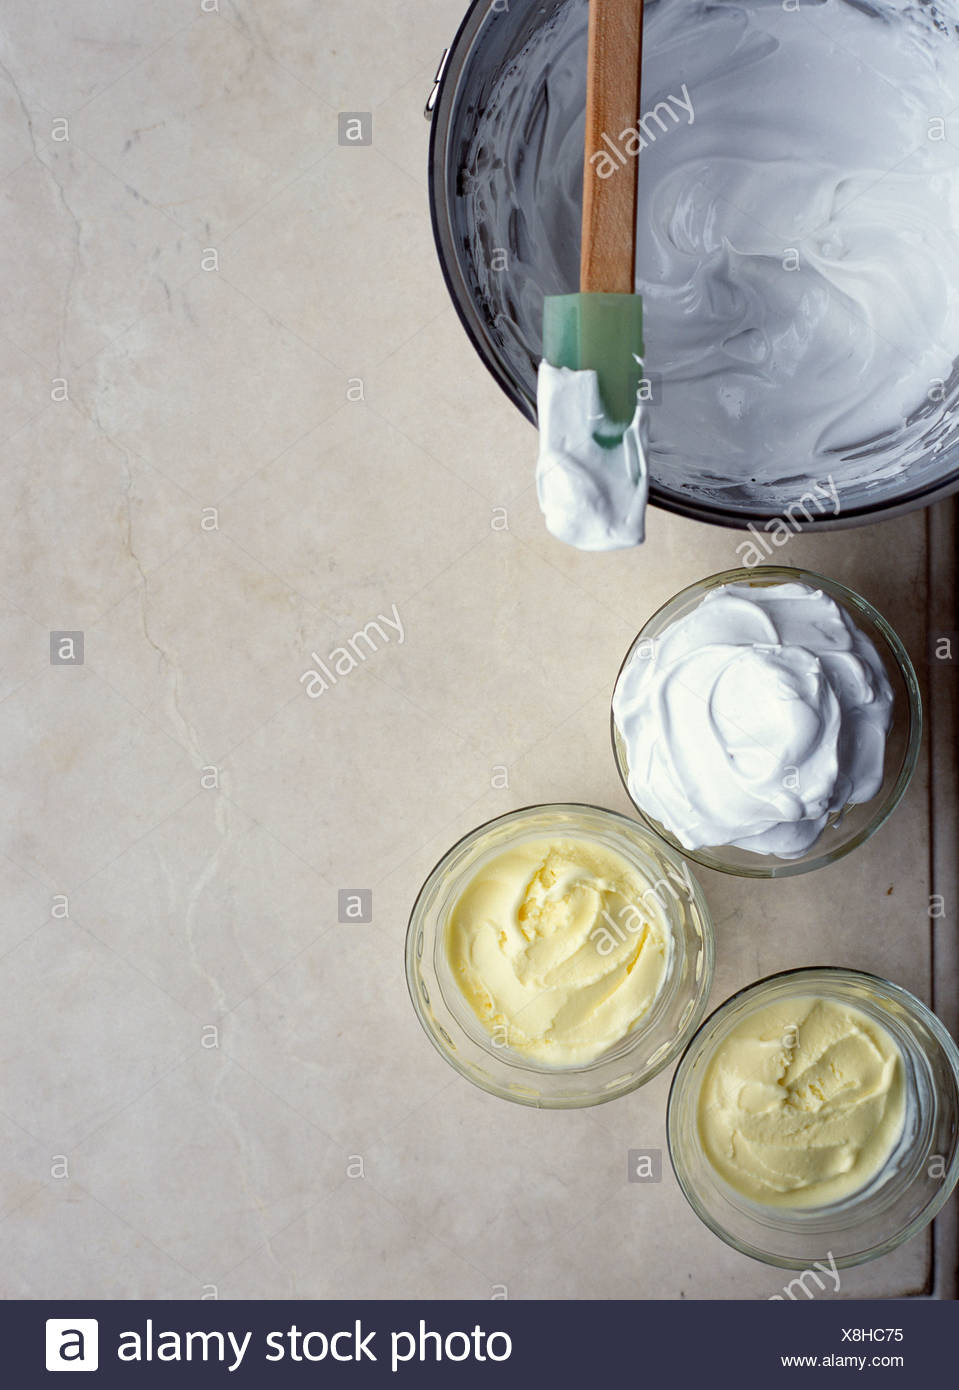 Adding the meringue to the verrines half full of lemon sorbet - Stock Image